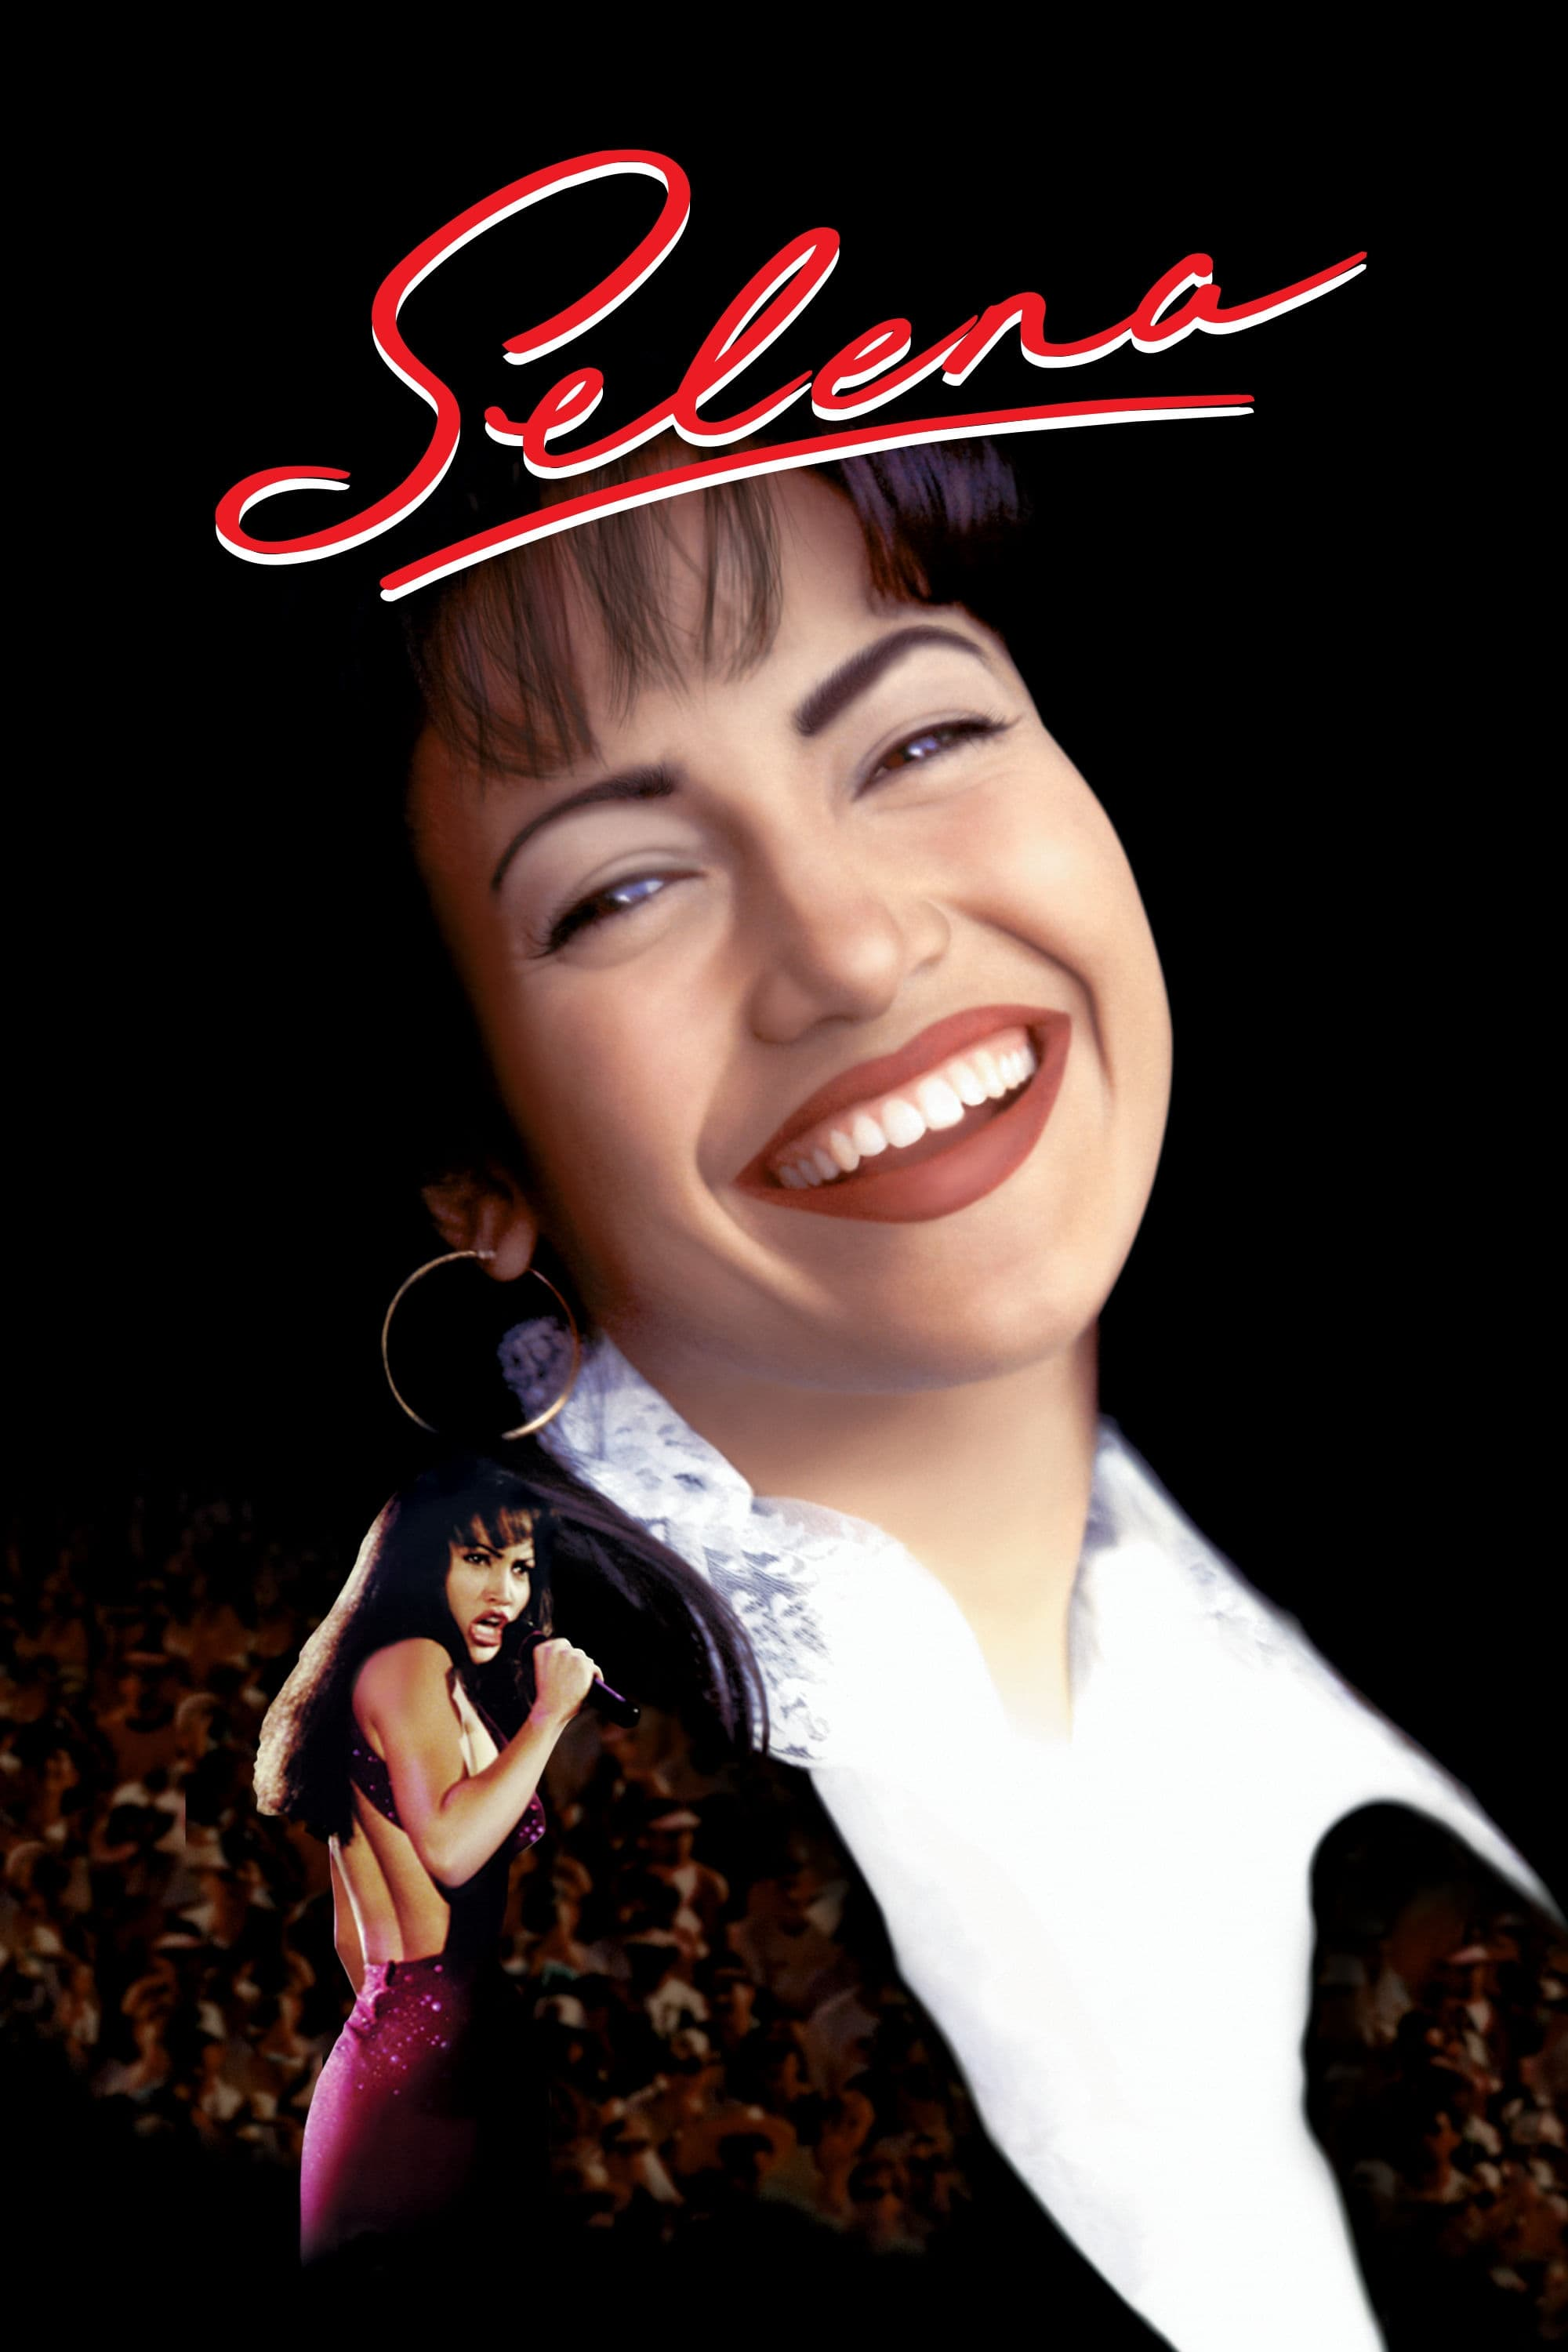 Selena 1997 Legendado